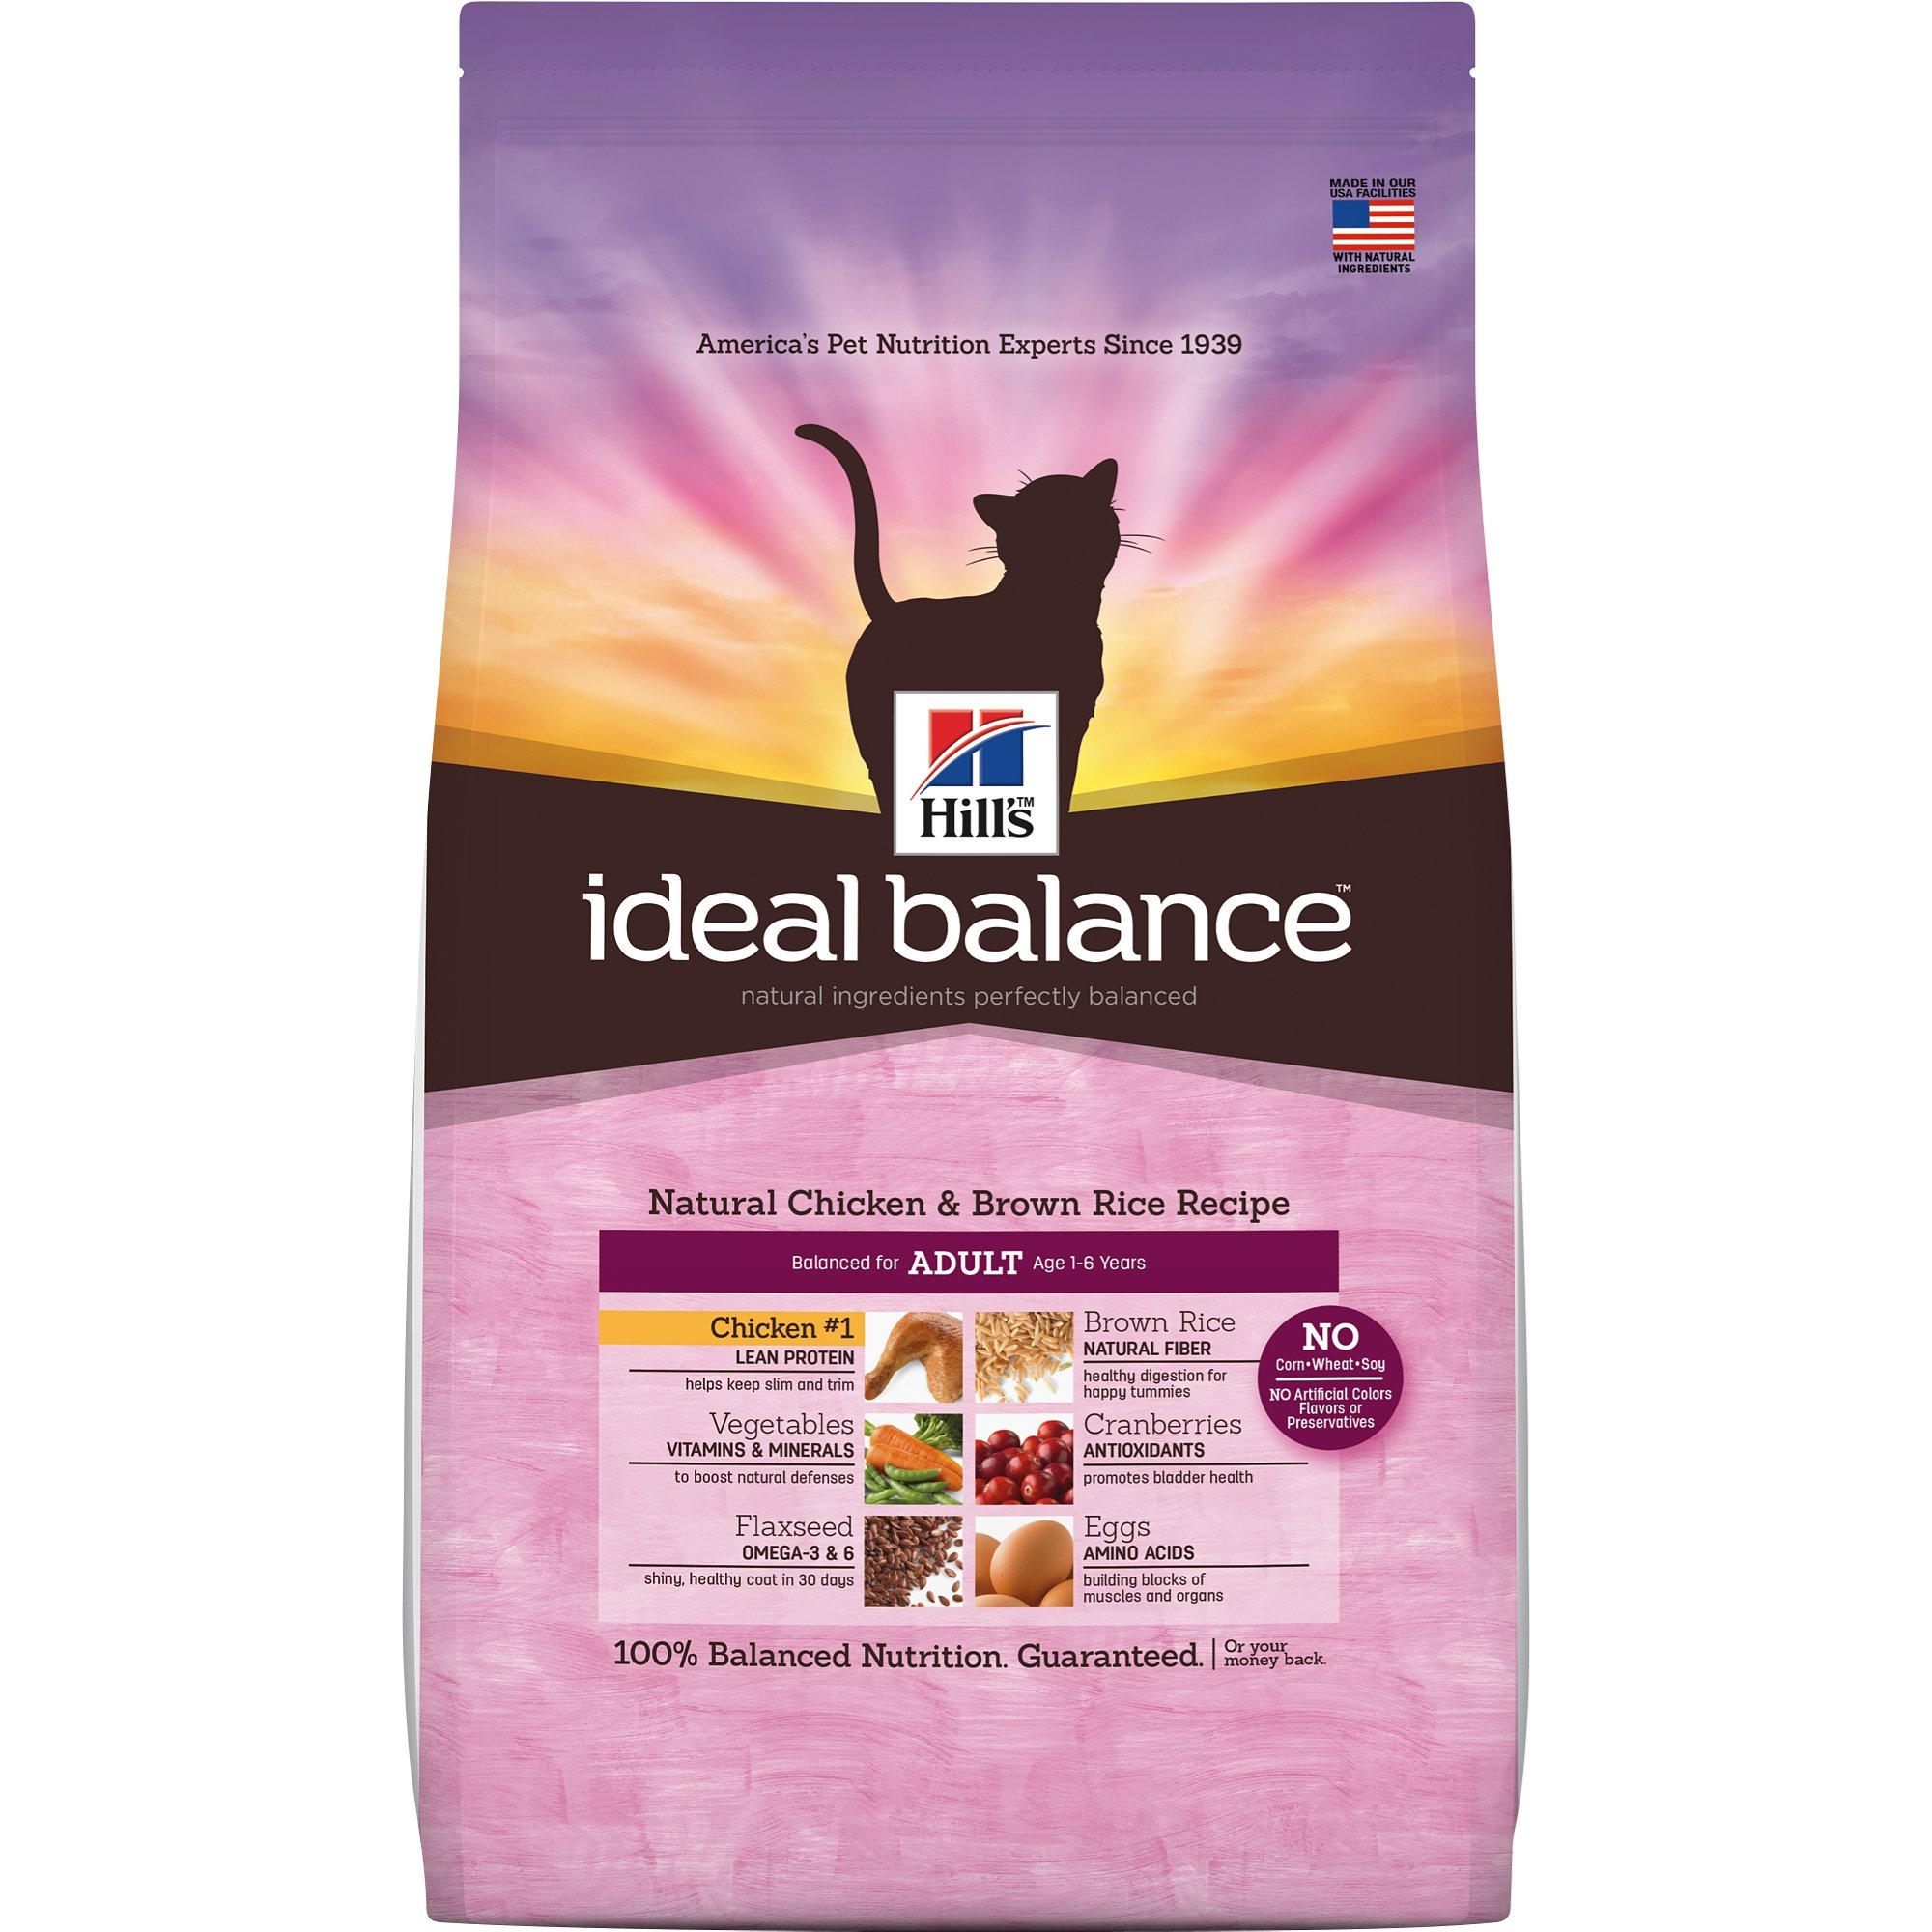 Hill's Ideal Balance Adult Natural Cat Food, Chicken & Brown Rice Recipe Dry Cat Food, 15 lb Bag